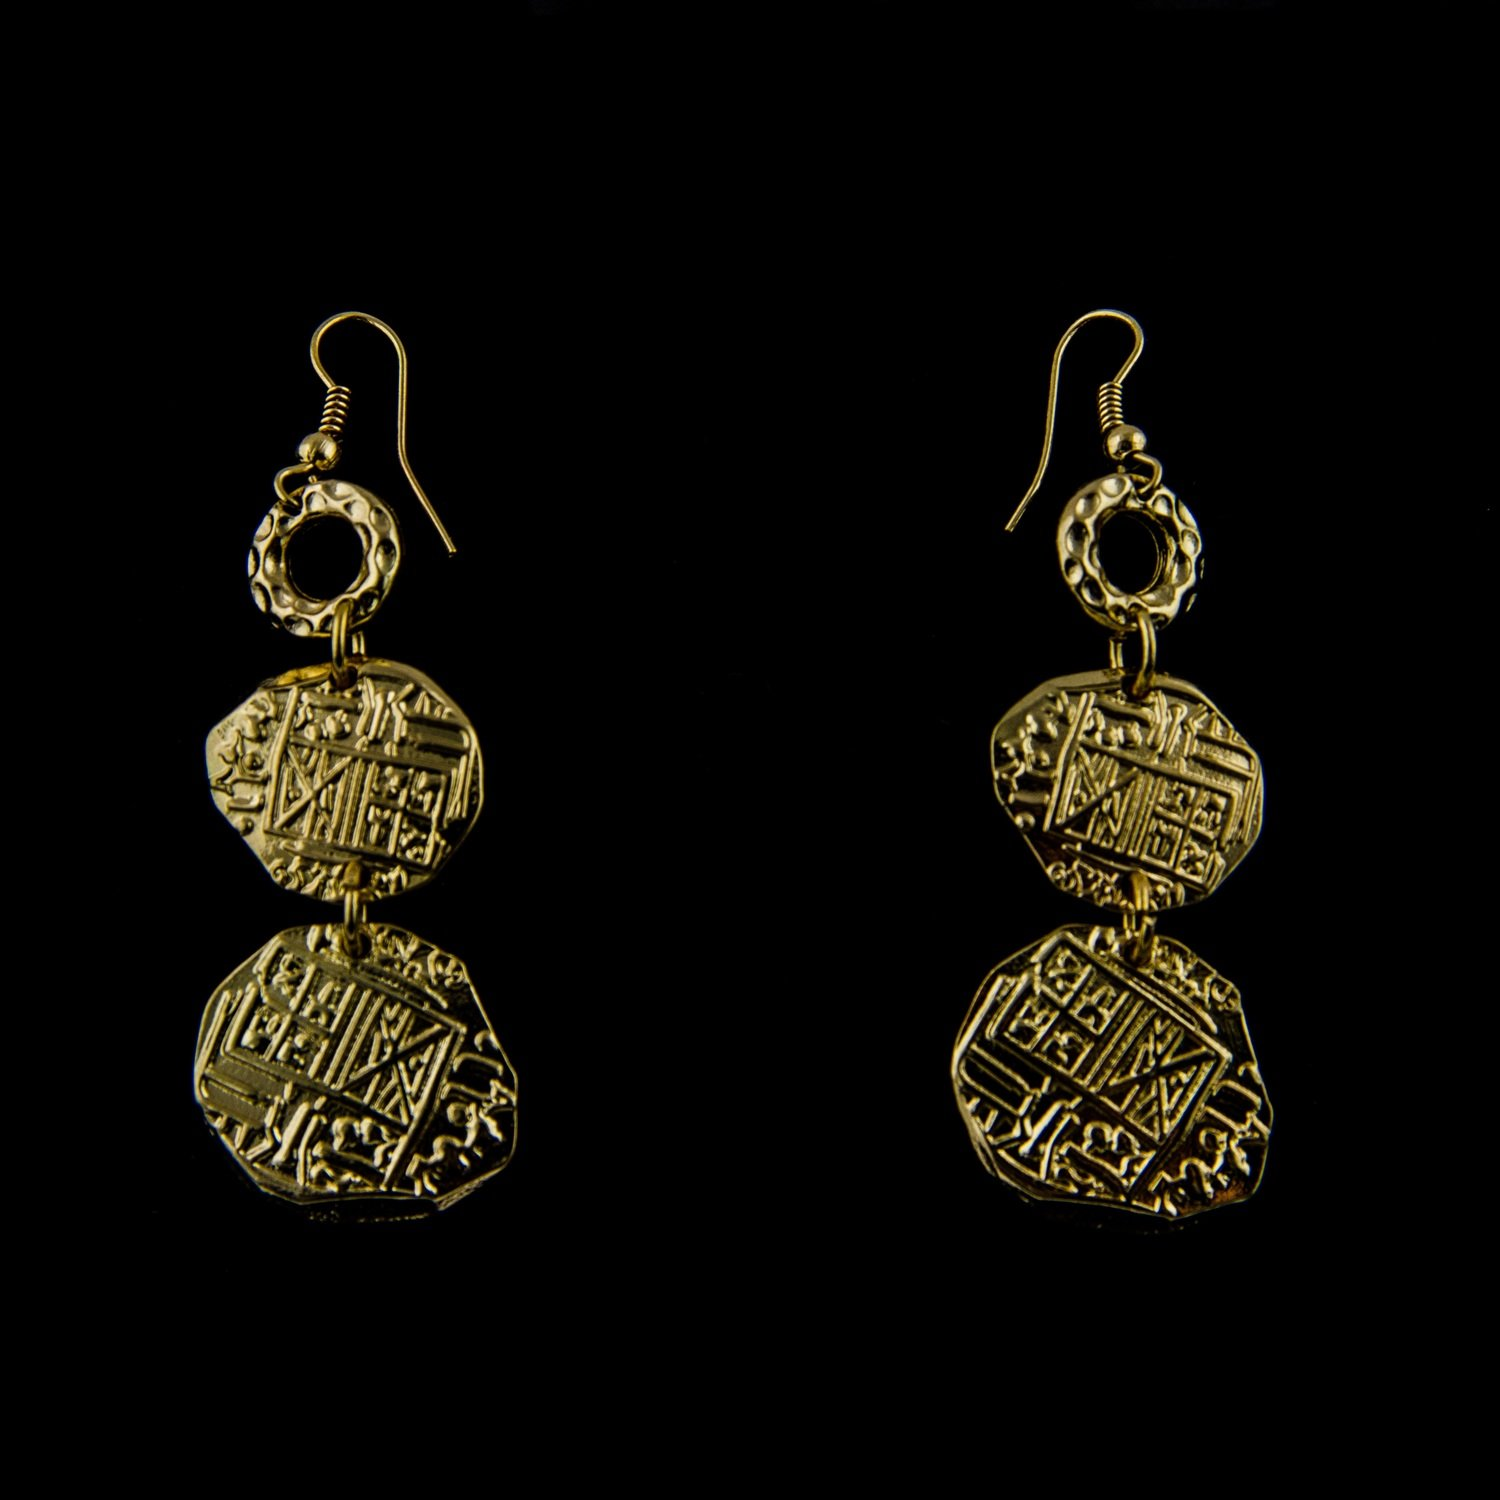 Pieces of 8 earrings